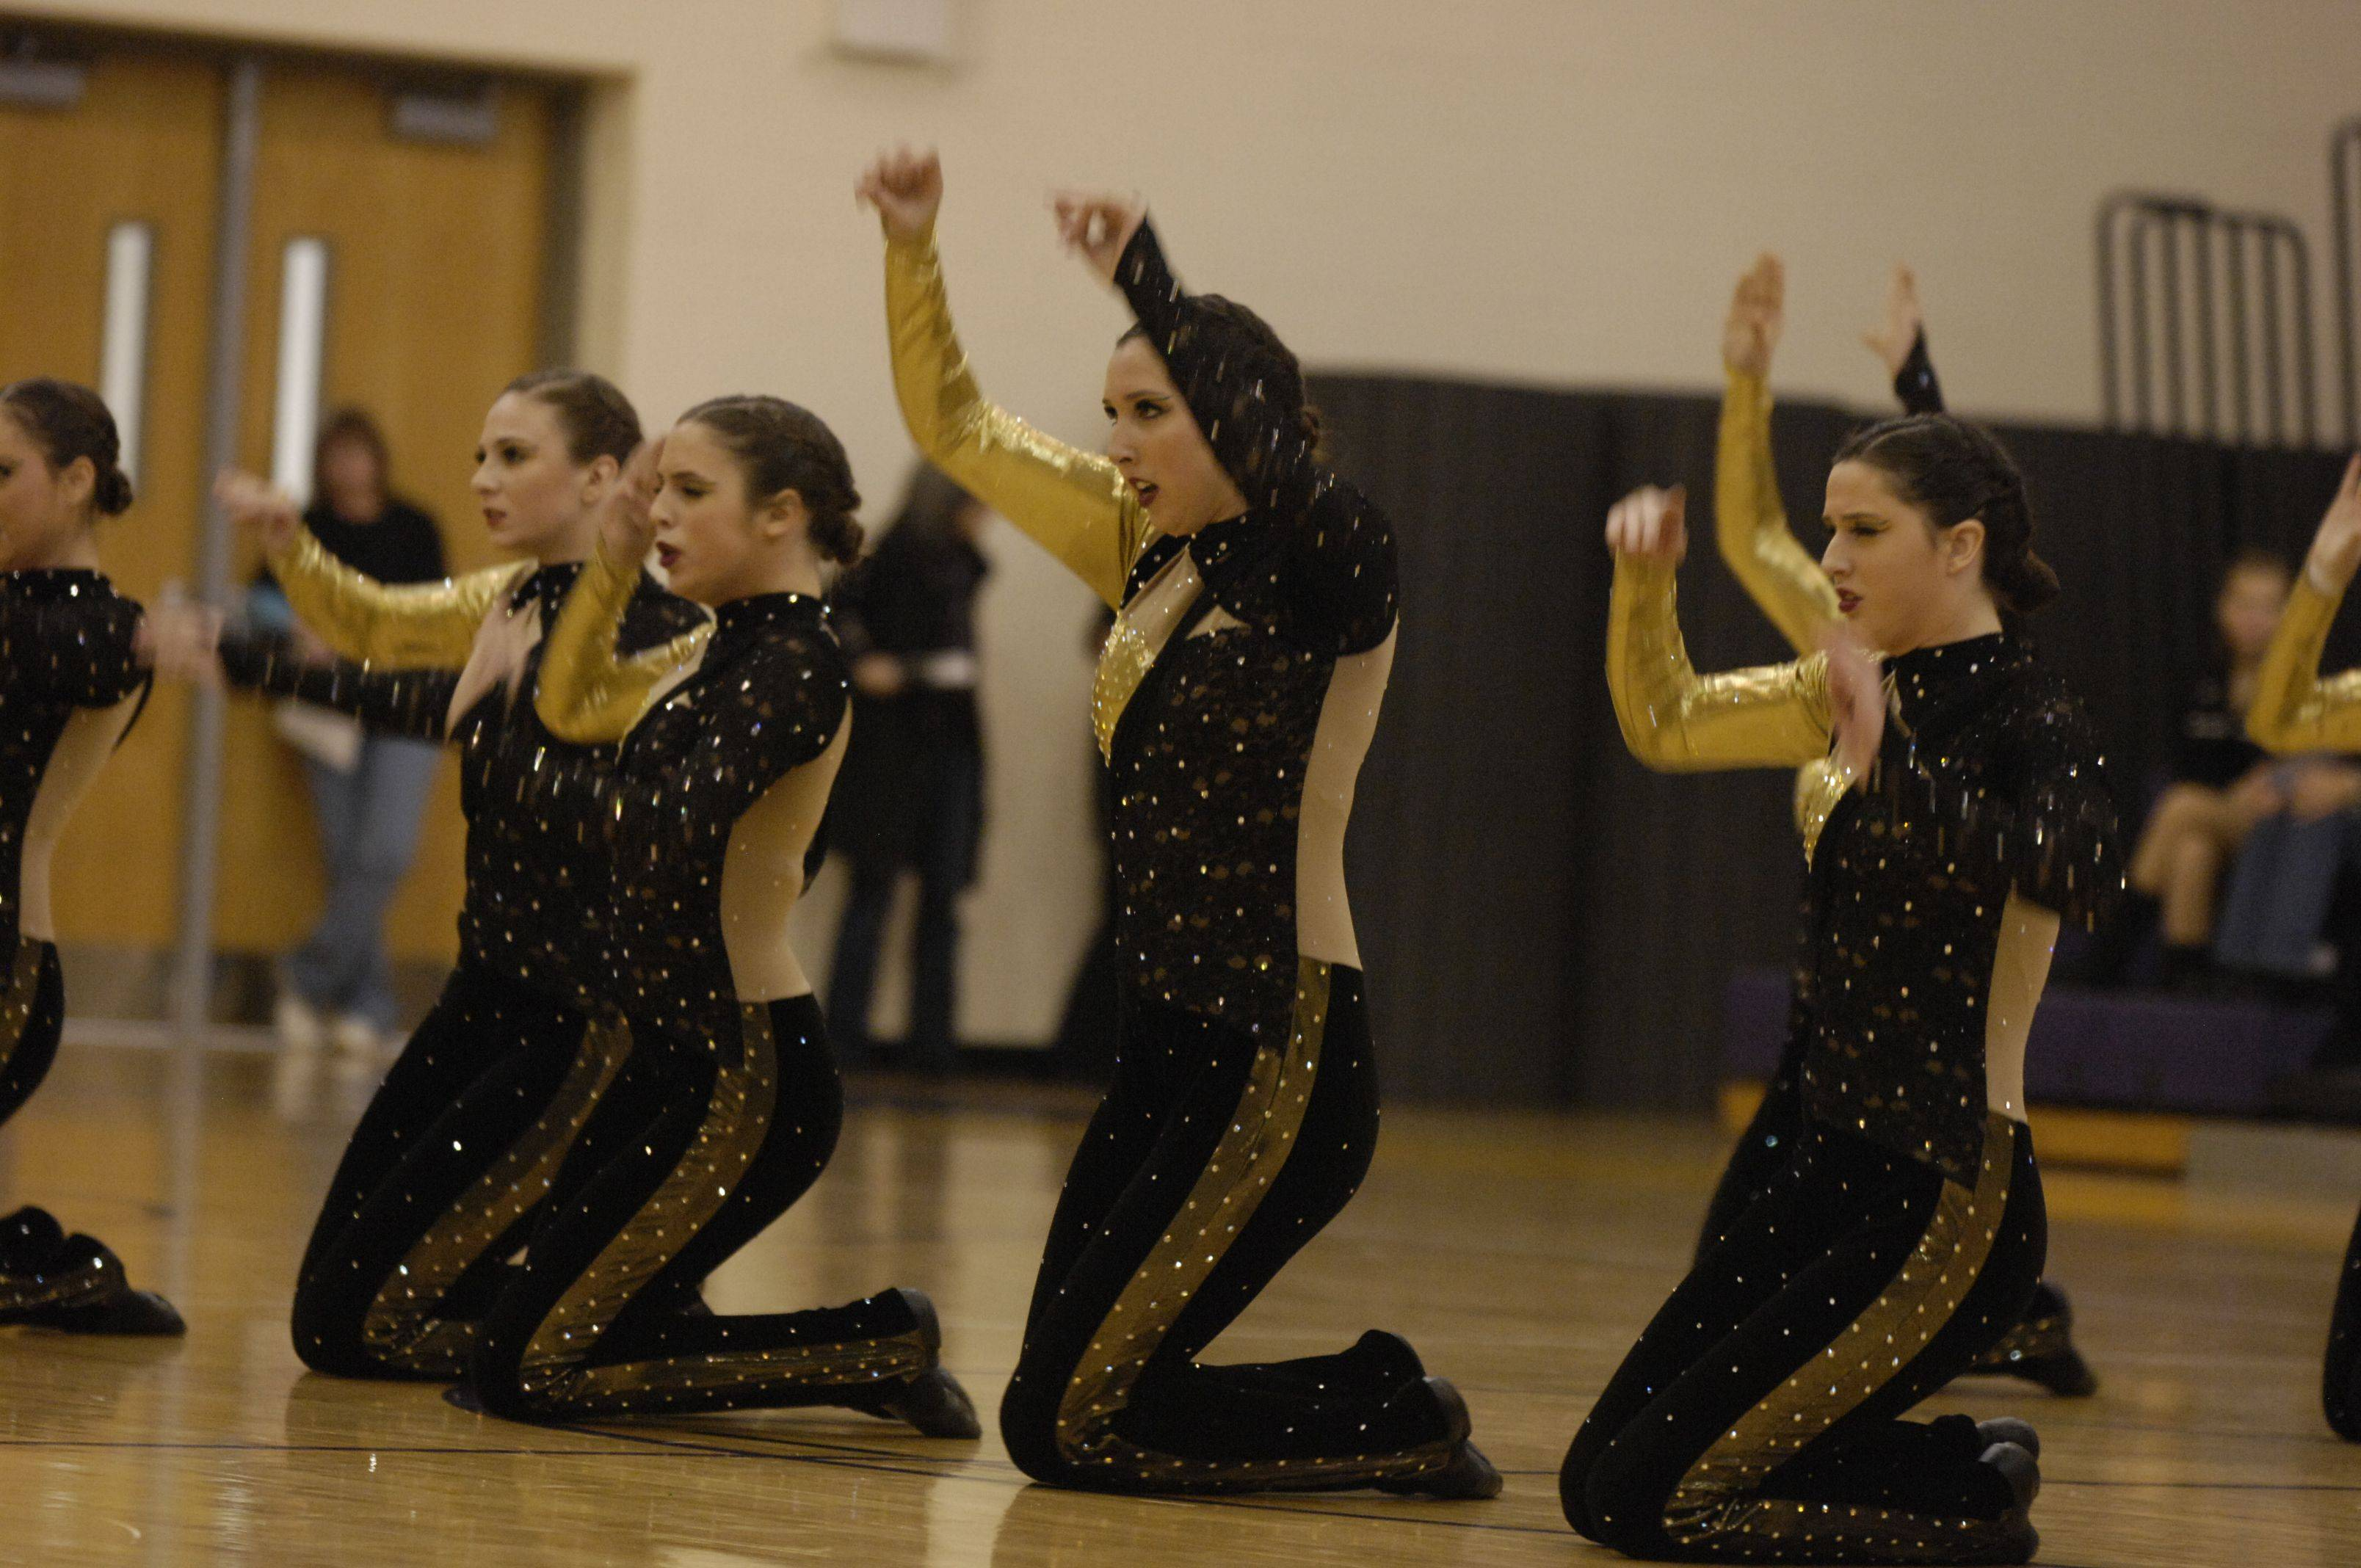 Maine South High School performs in the AAA Kick division during the Team Dance Illinois Wauconda Invitational competition at Wauconda High School.